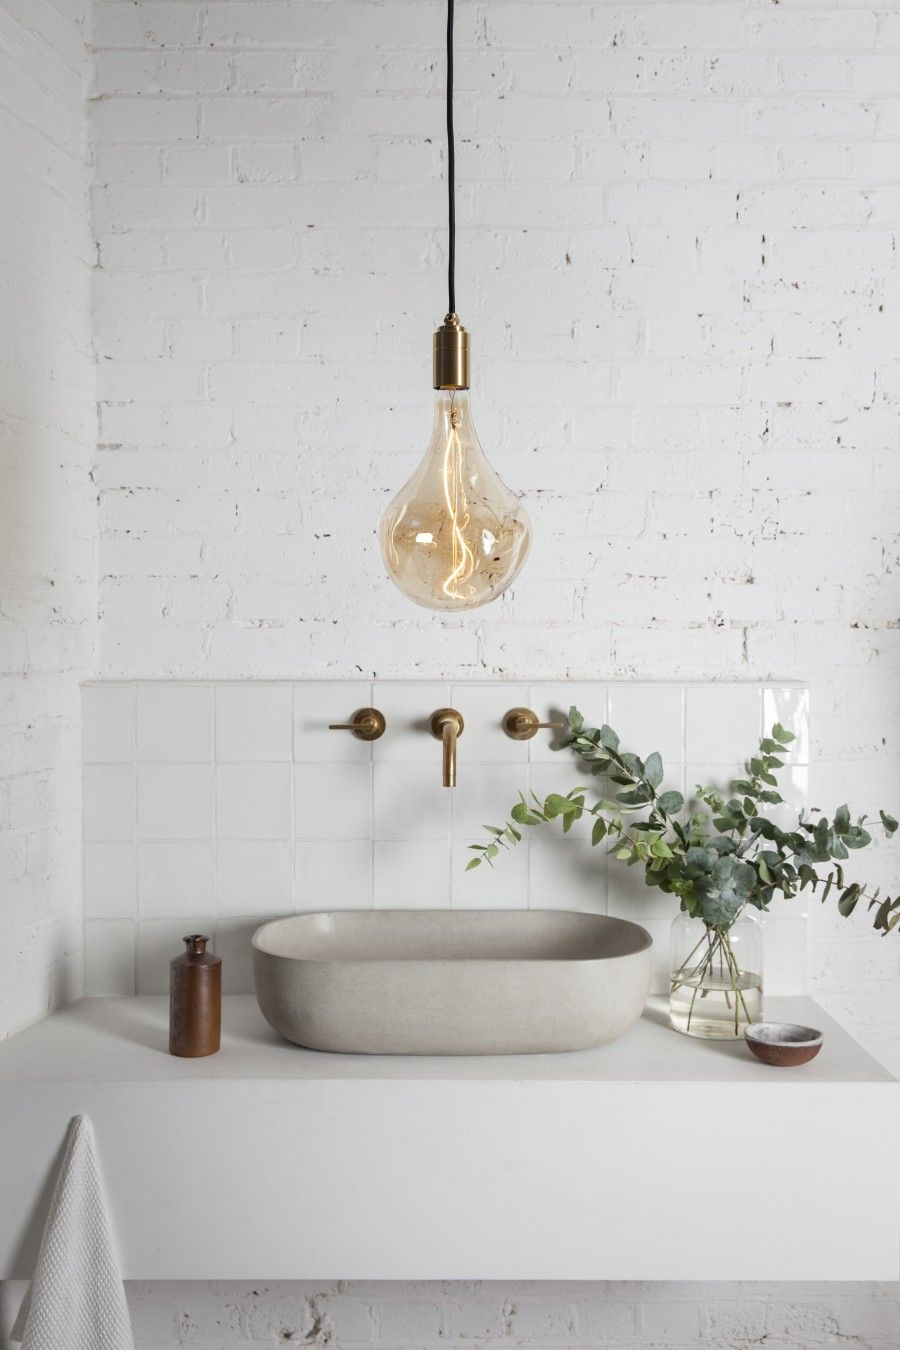 Tala lighting | Pinterest | Minimalistisches badezimmer, Badezimmer ...